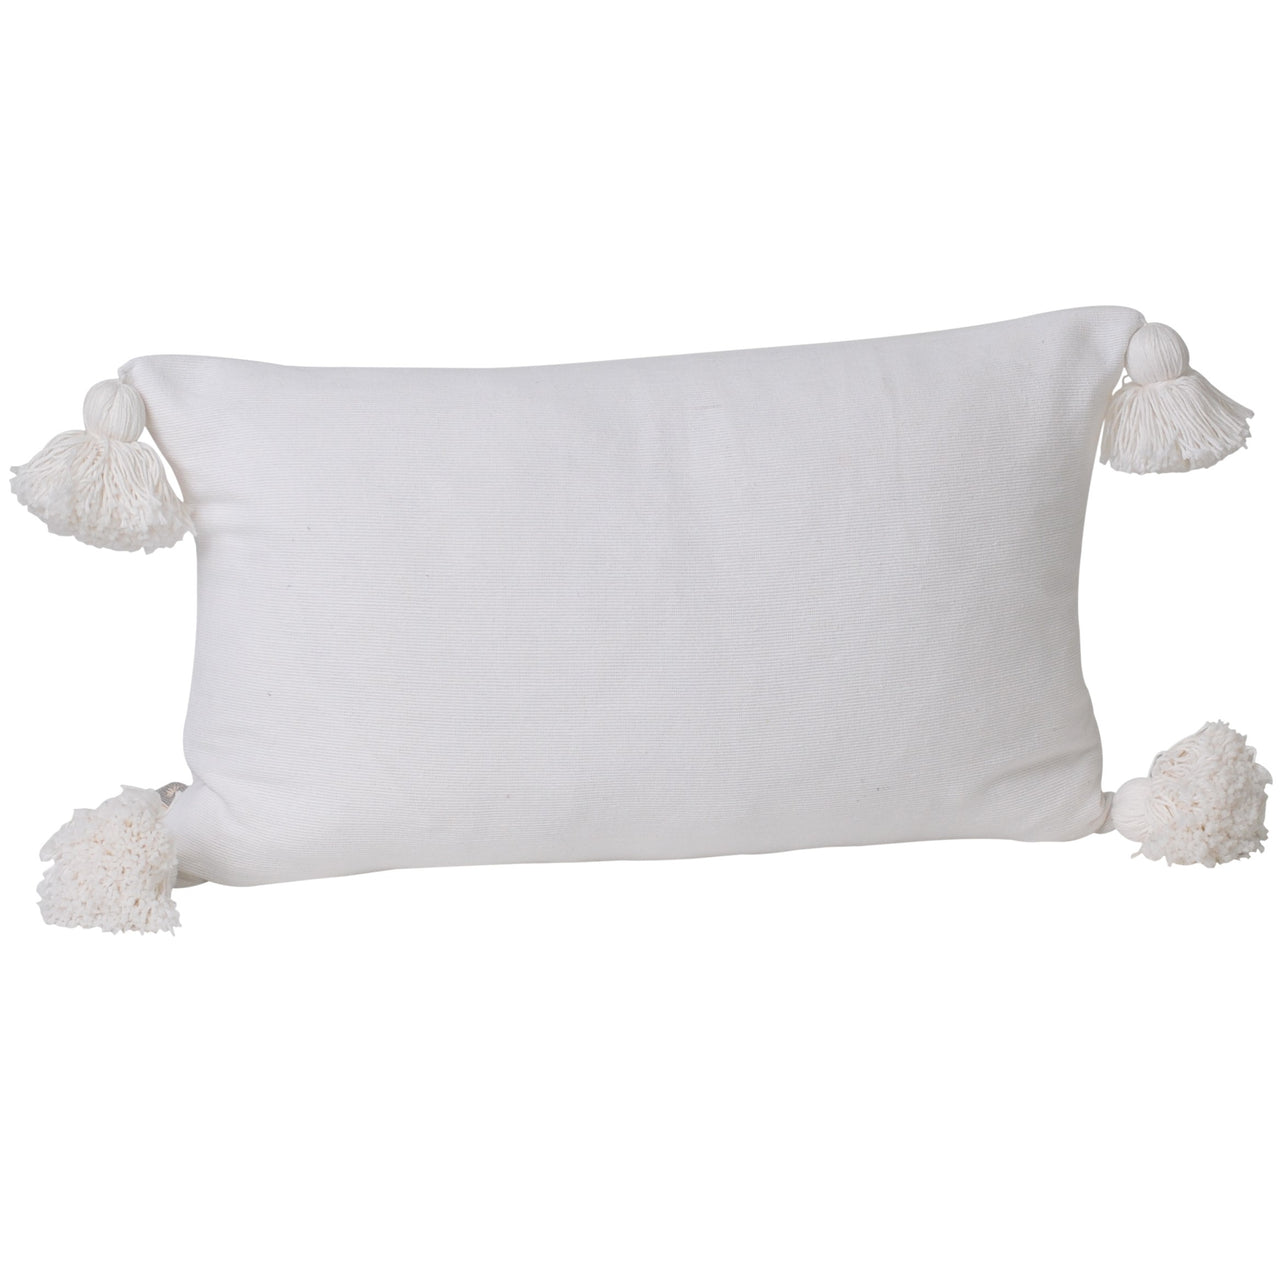 Soho Tassel Lumbar Cushion- White